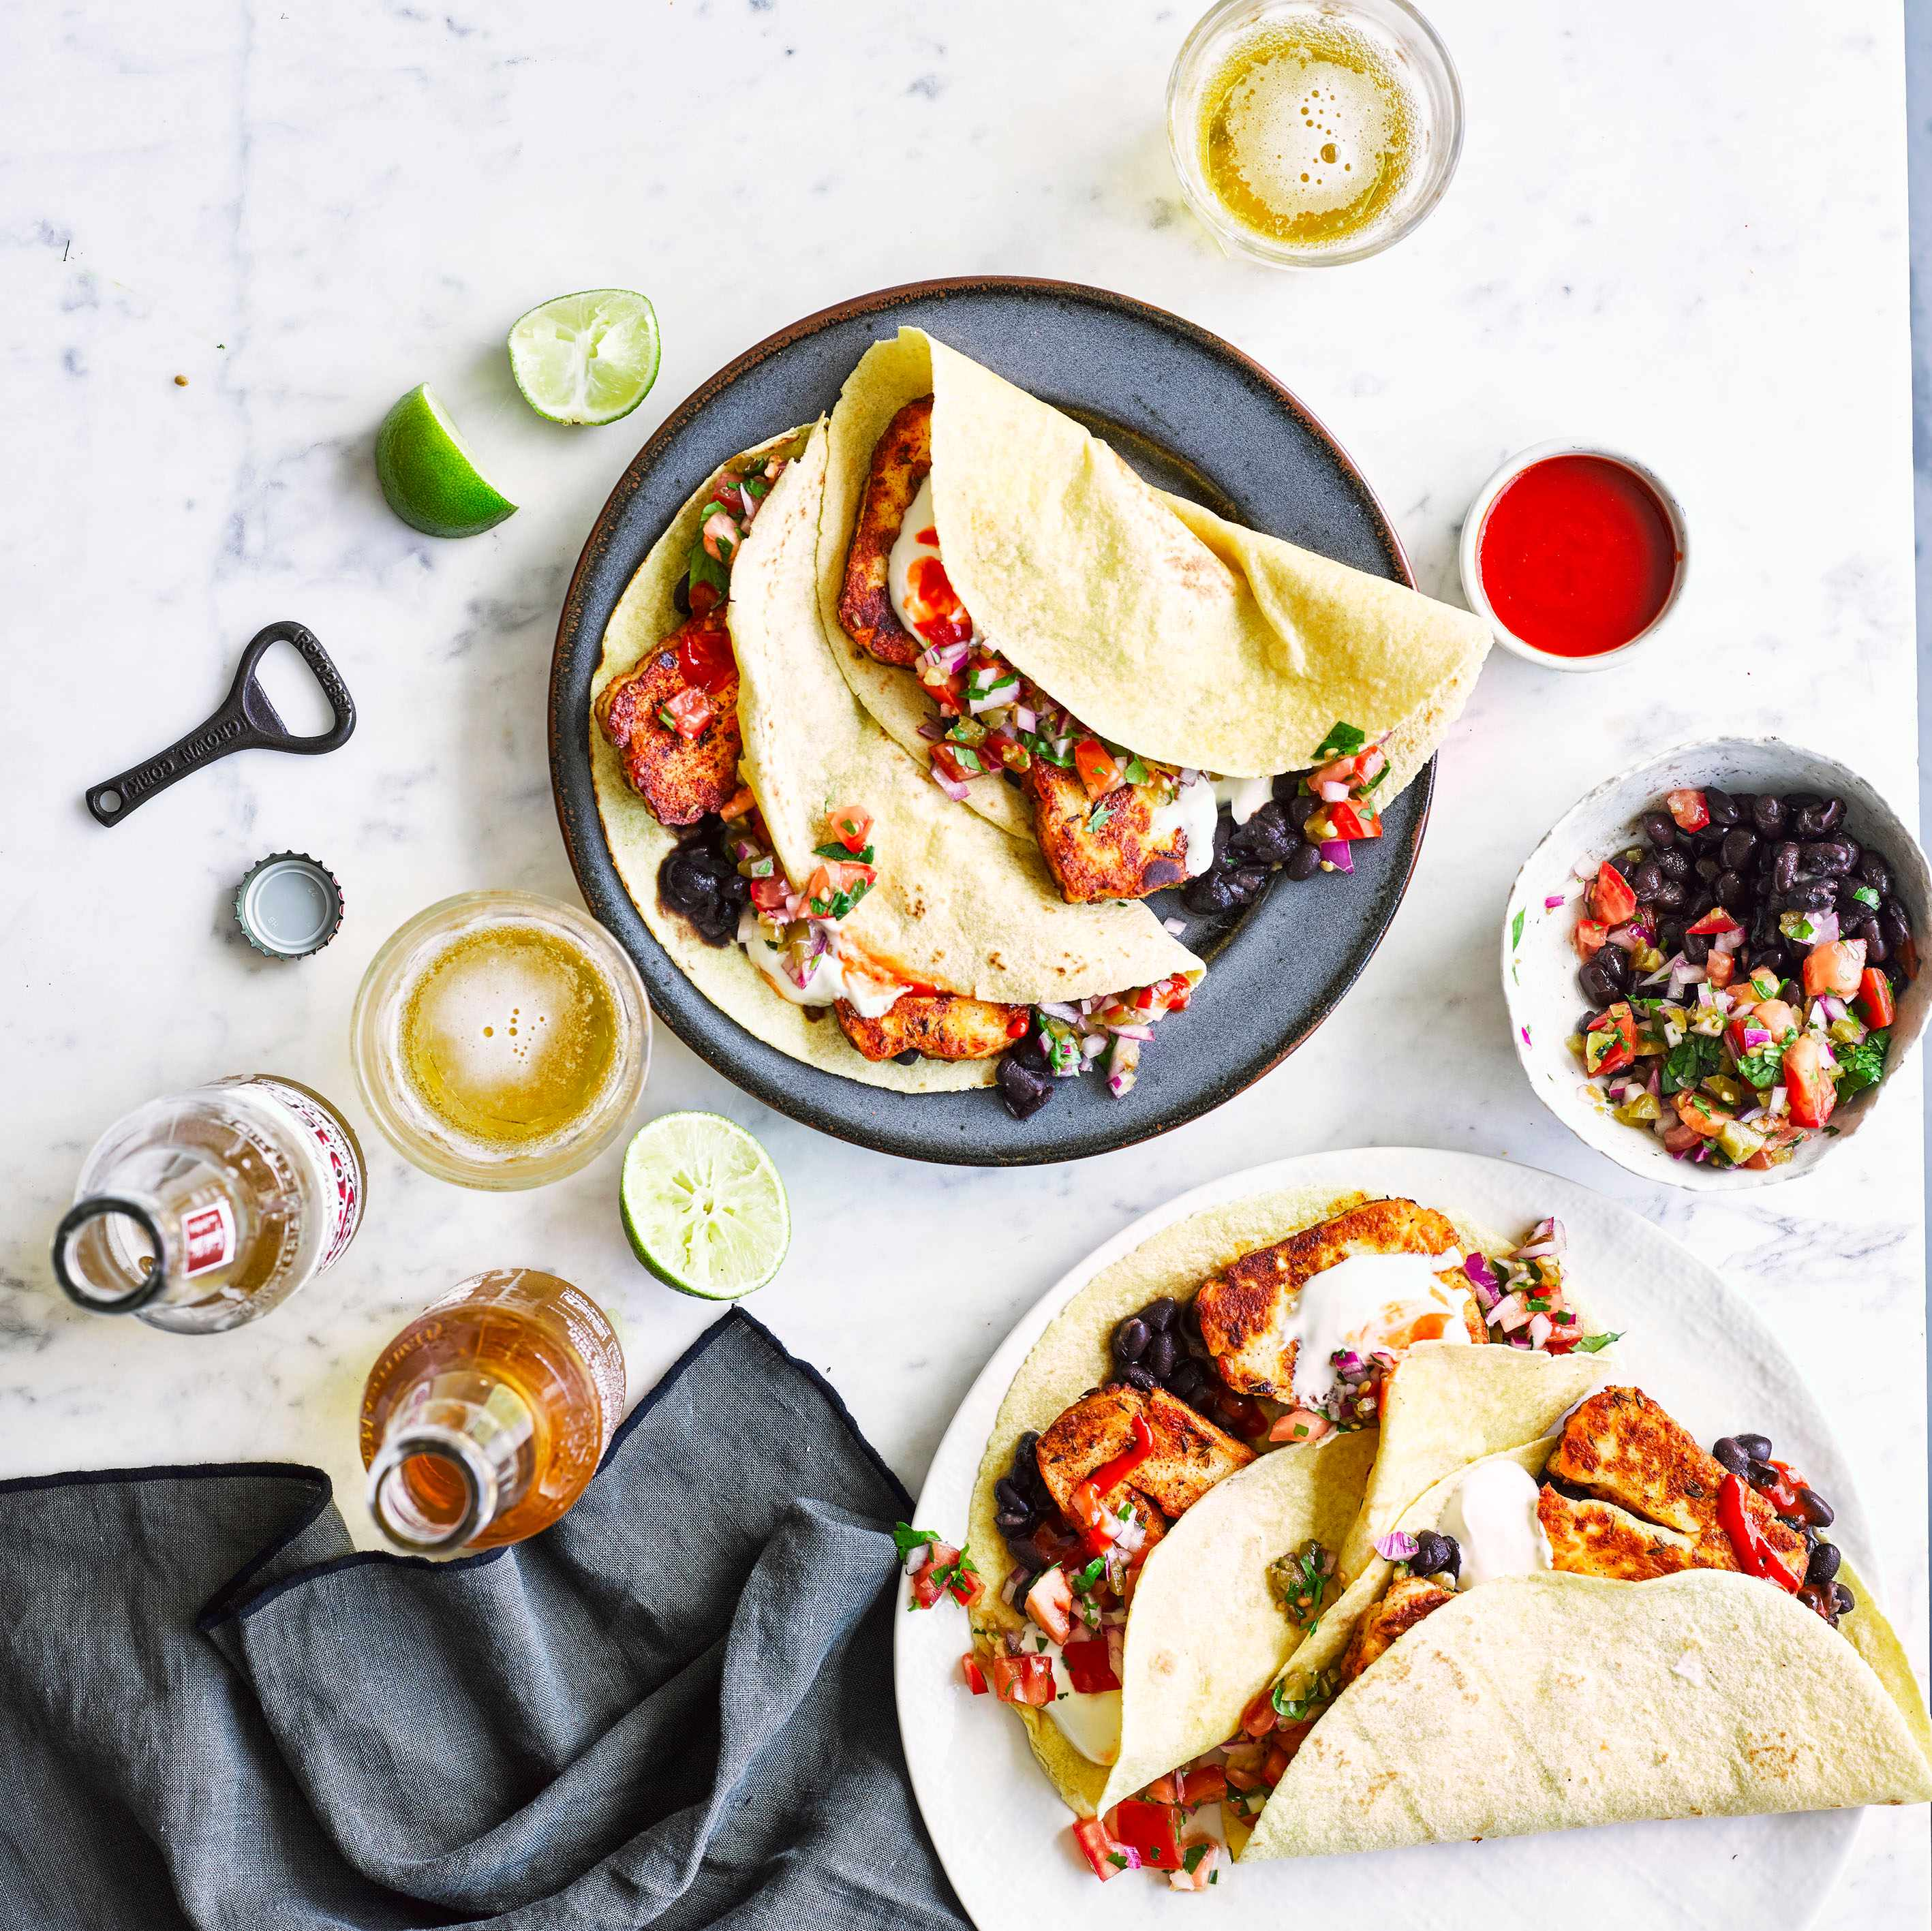 Vegetarian Tacos With Halloumi and Pico De Gallo